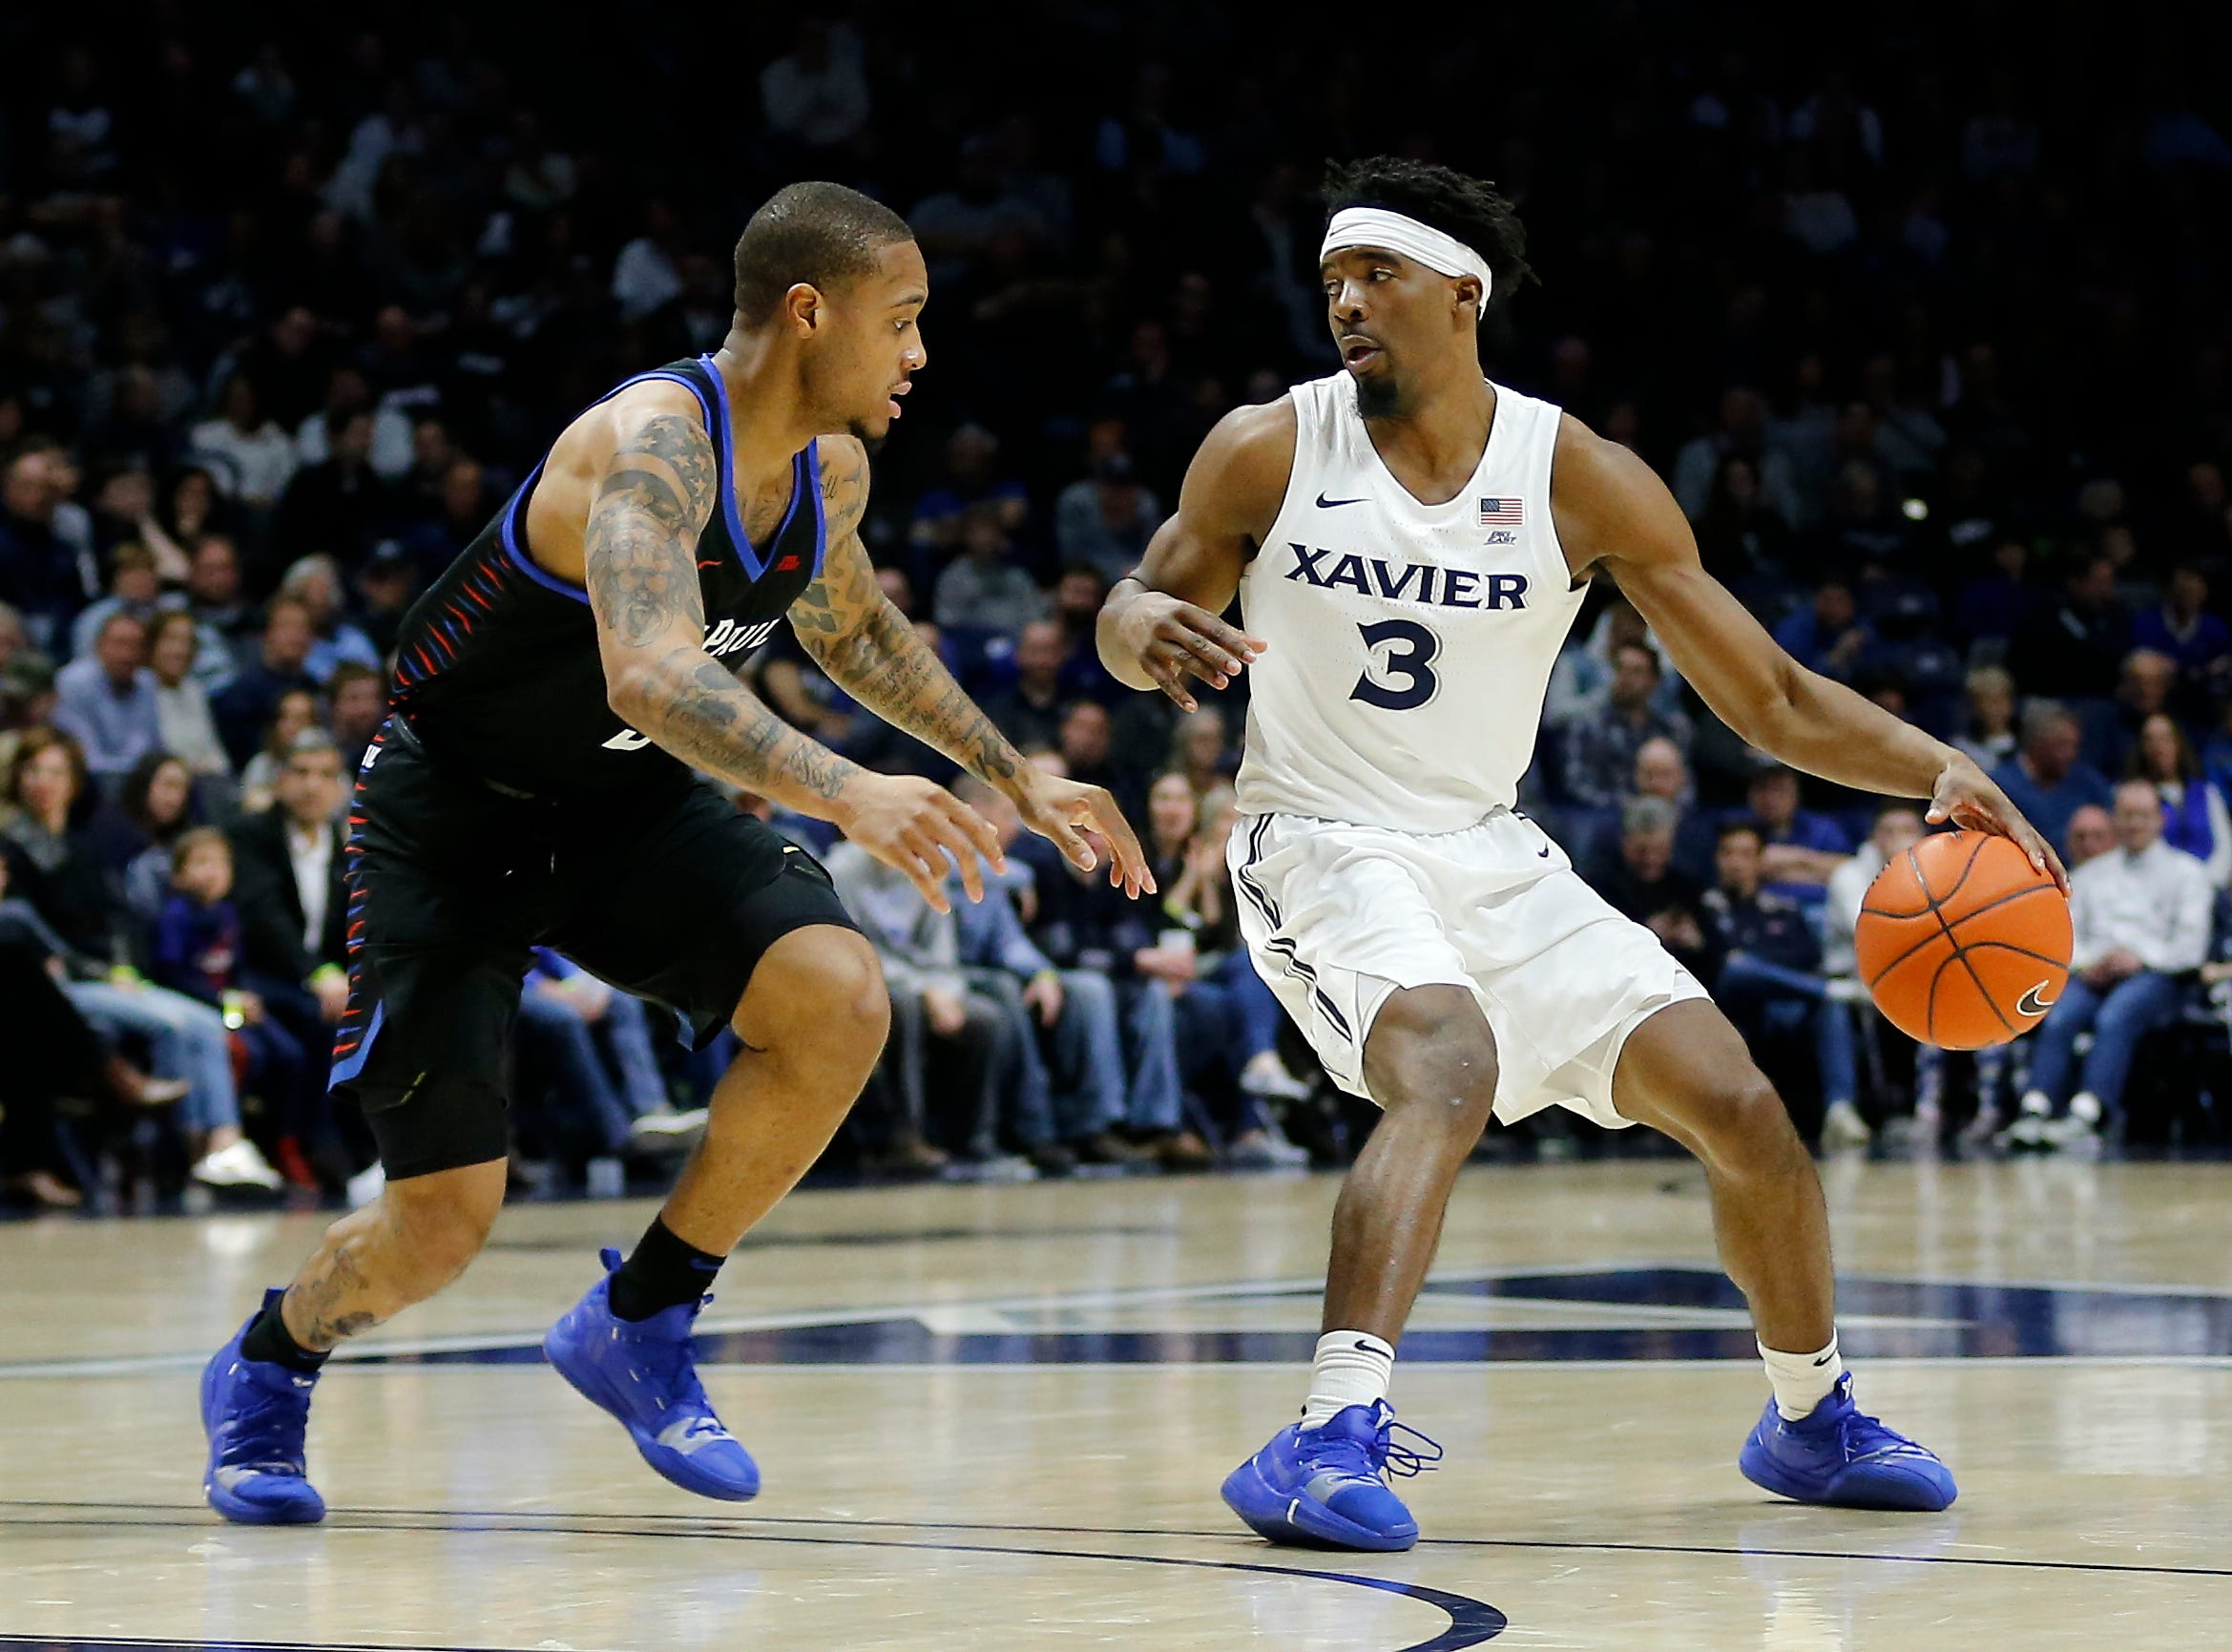 Xavier Musketeers guard Quentin Goodin (3) drives against DePaul Blue Demons guard Devin Gage (3) in the first half of the NCAA Big East Conference game between the Xavier Musketeers and the DePaul Blue Demons at the Cintas Center in Cincinnati on Saturday, Feb. 9, 2019.